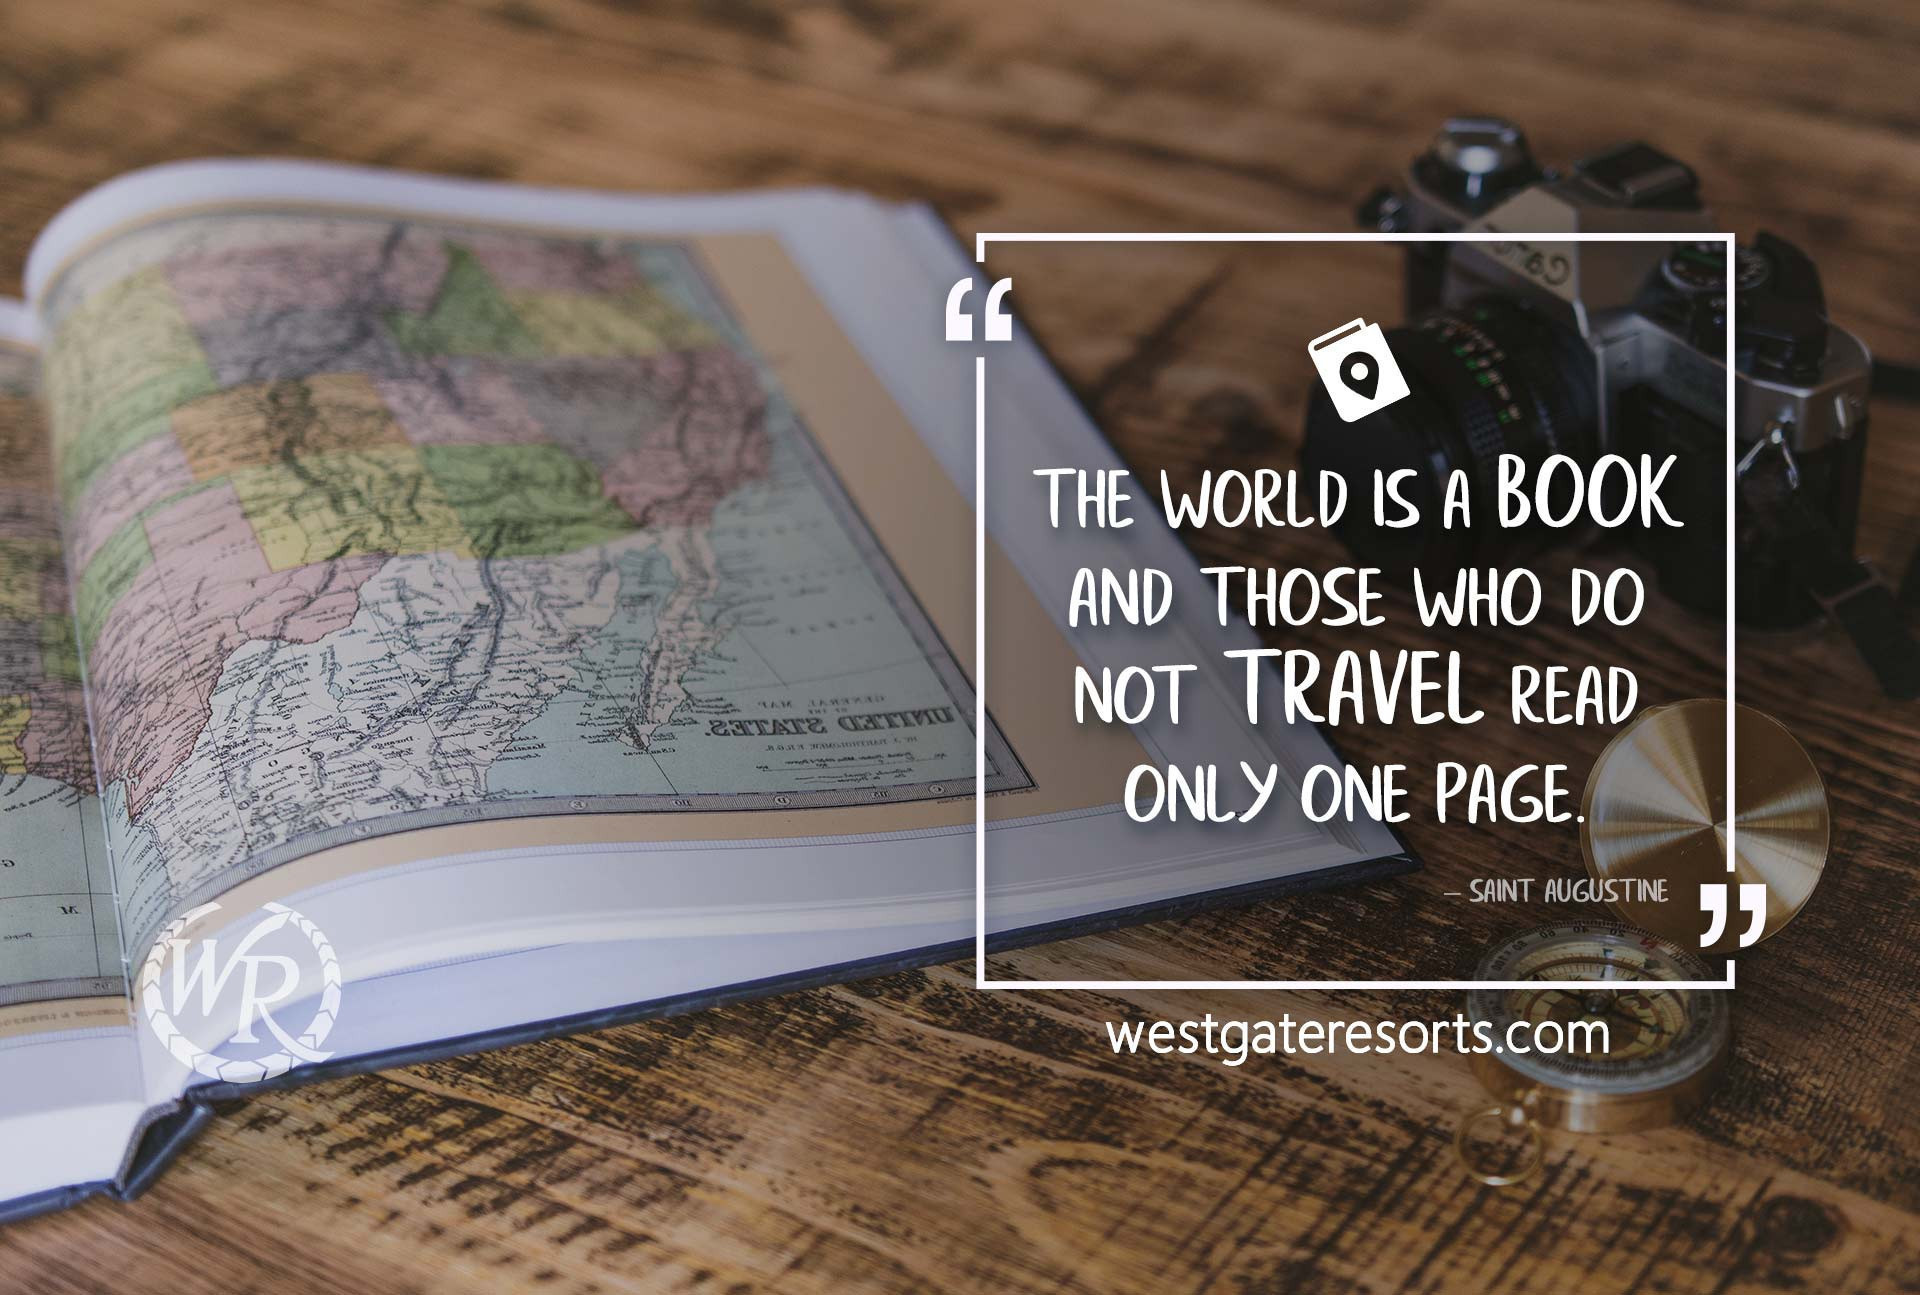 The world is a book, and those who do not travel read only one page. | Travel Motivation Quotes | Westgate Resorts